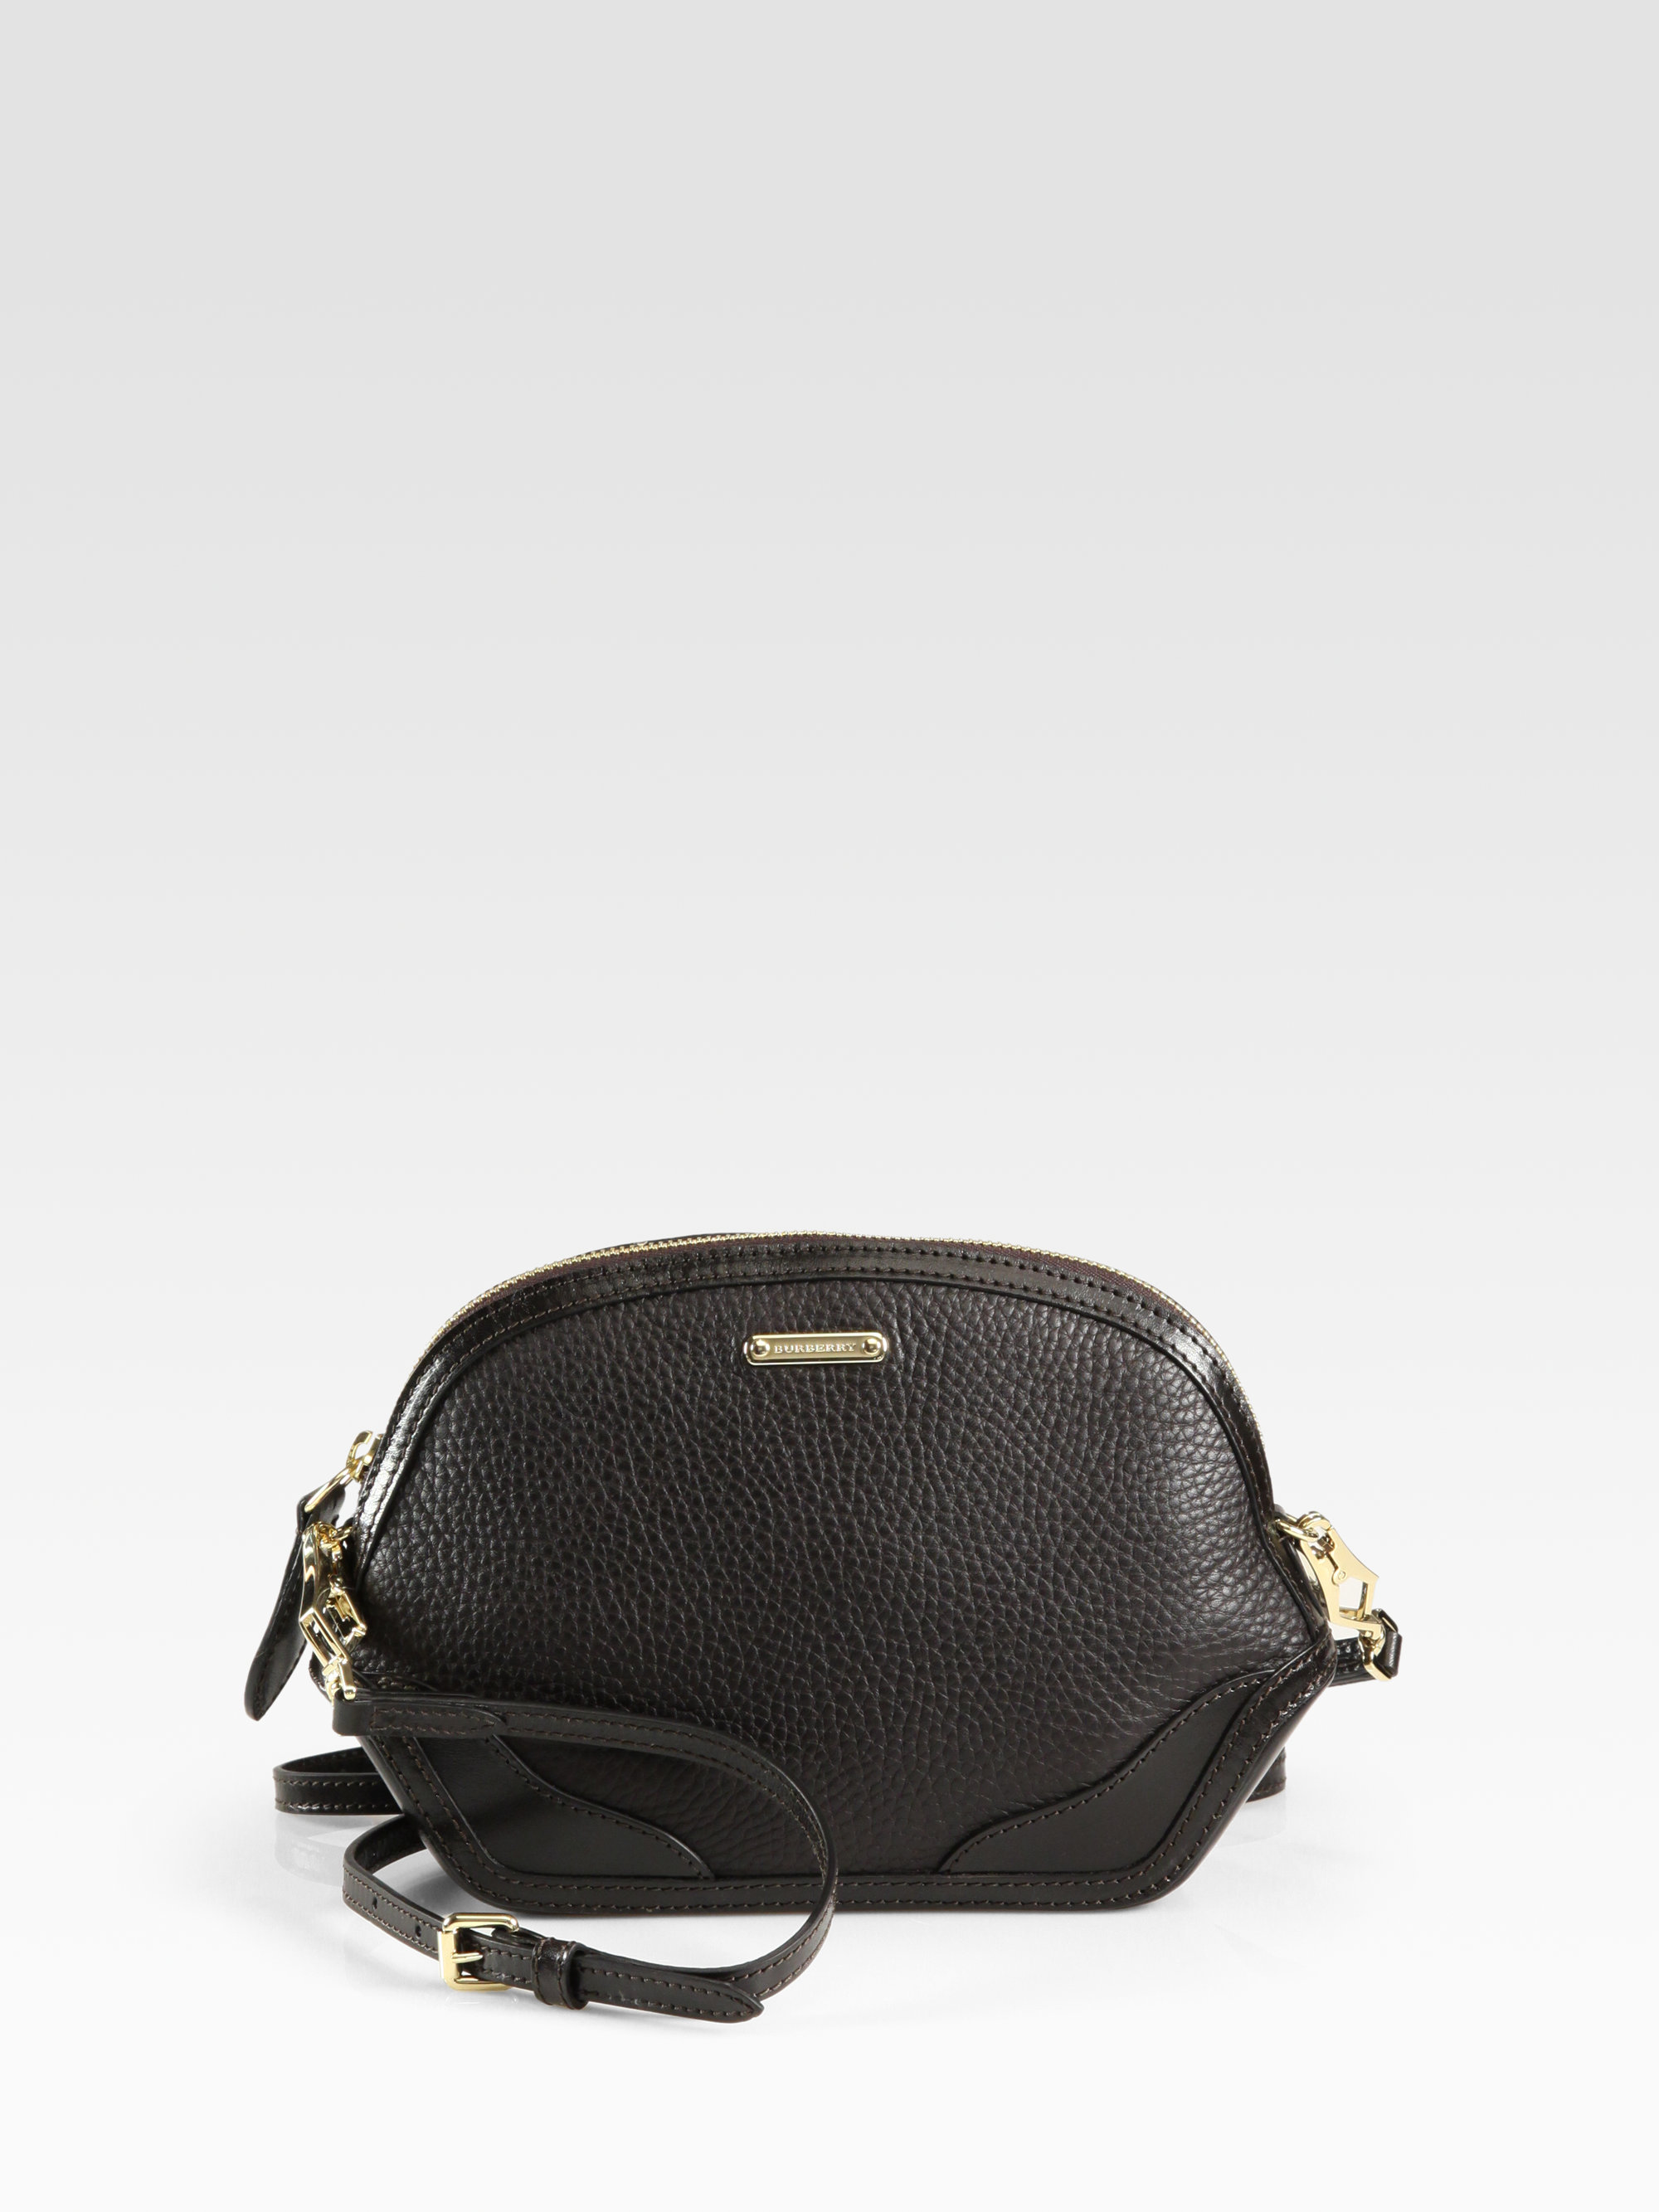 Lyst - Burberry Orchard Crossbody Bag in Black cd0981cfdd6f2